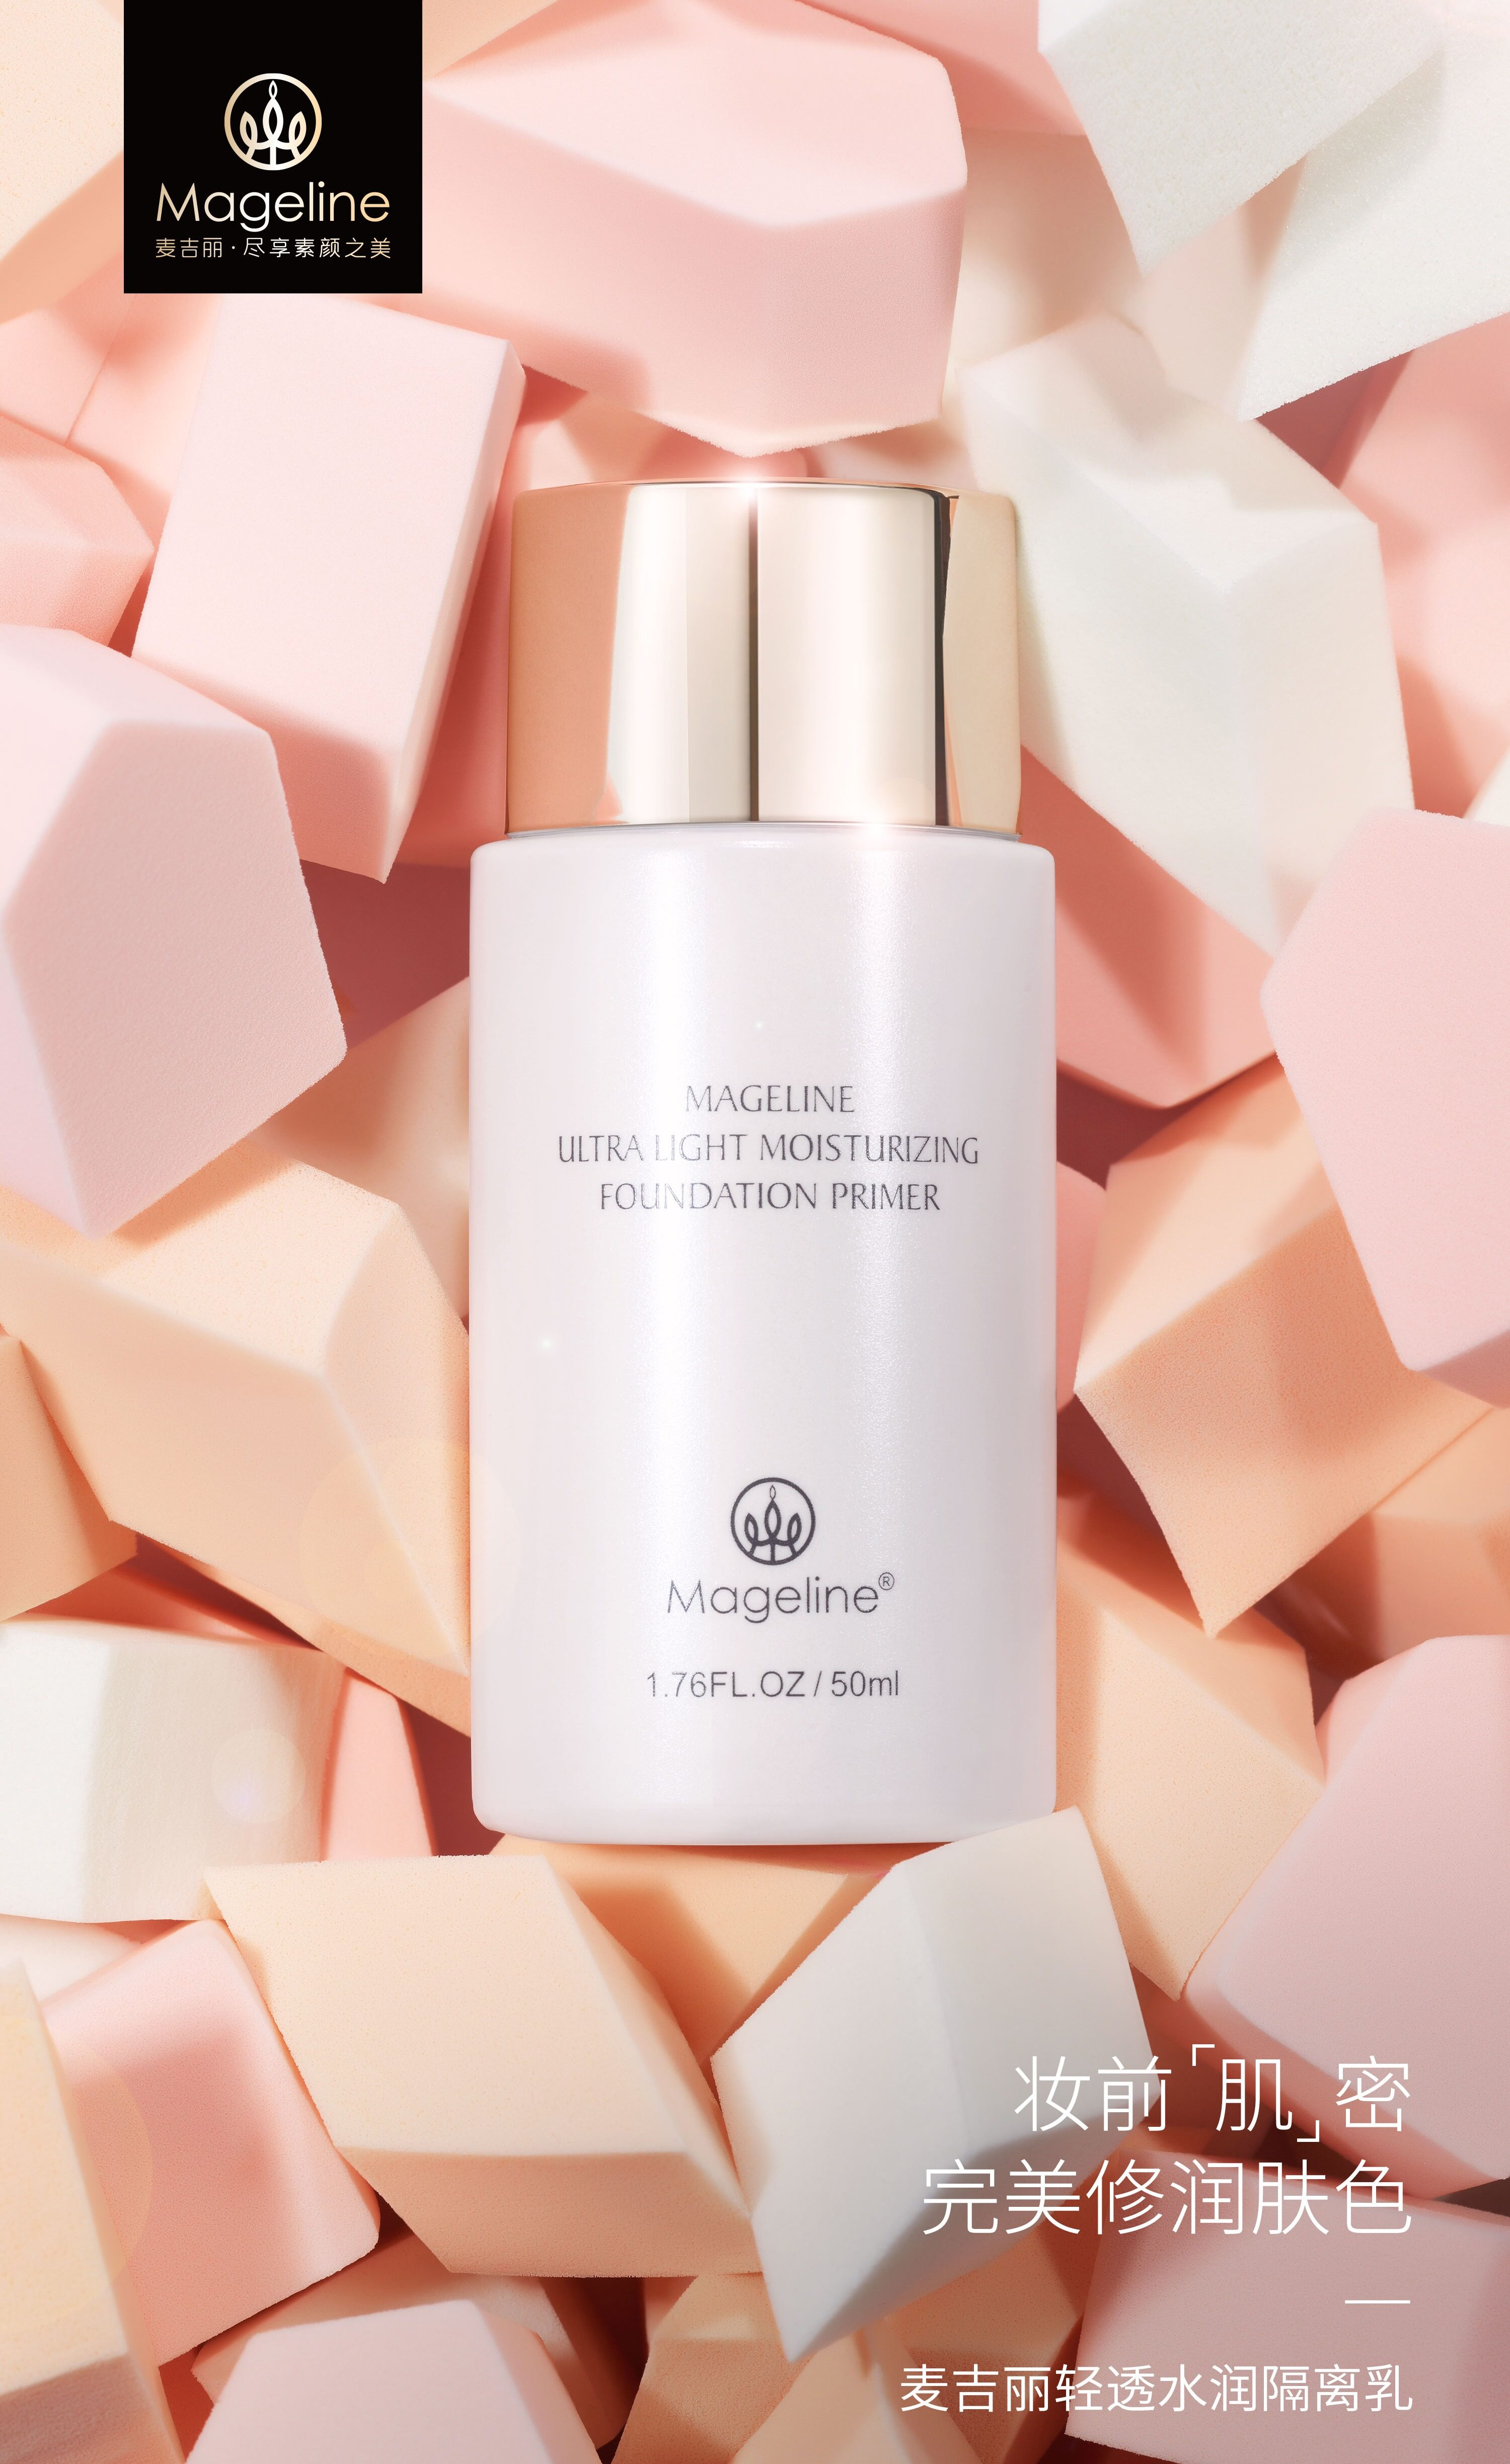 Mageline Ultra Light Moisturizing Foundation Primer